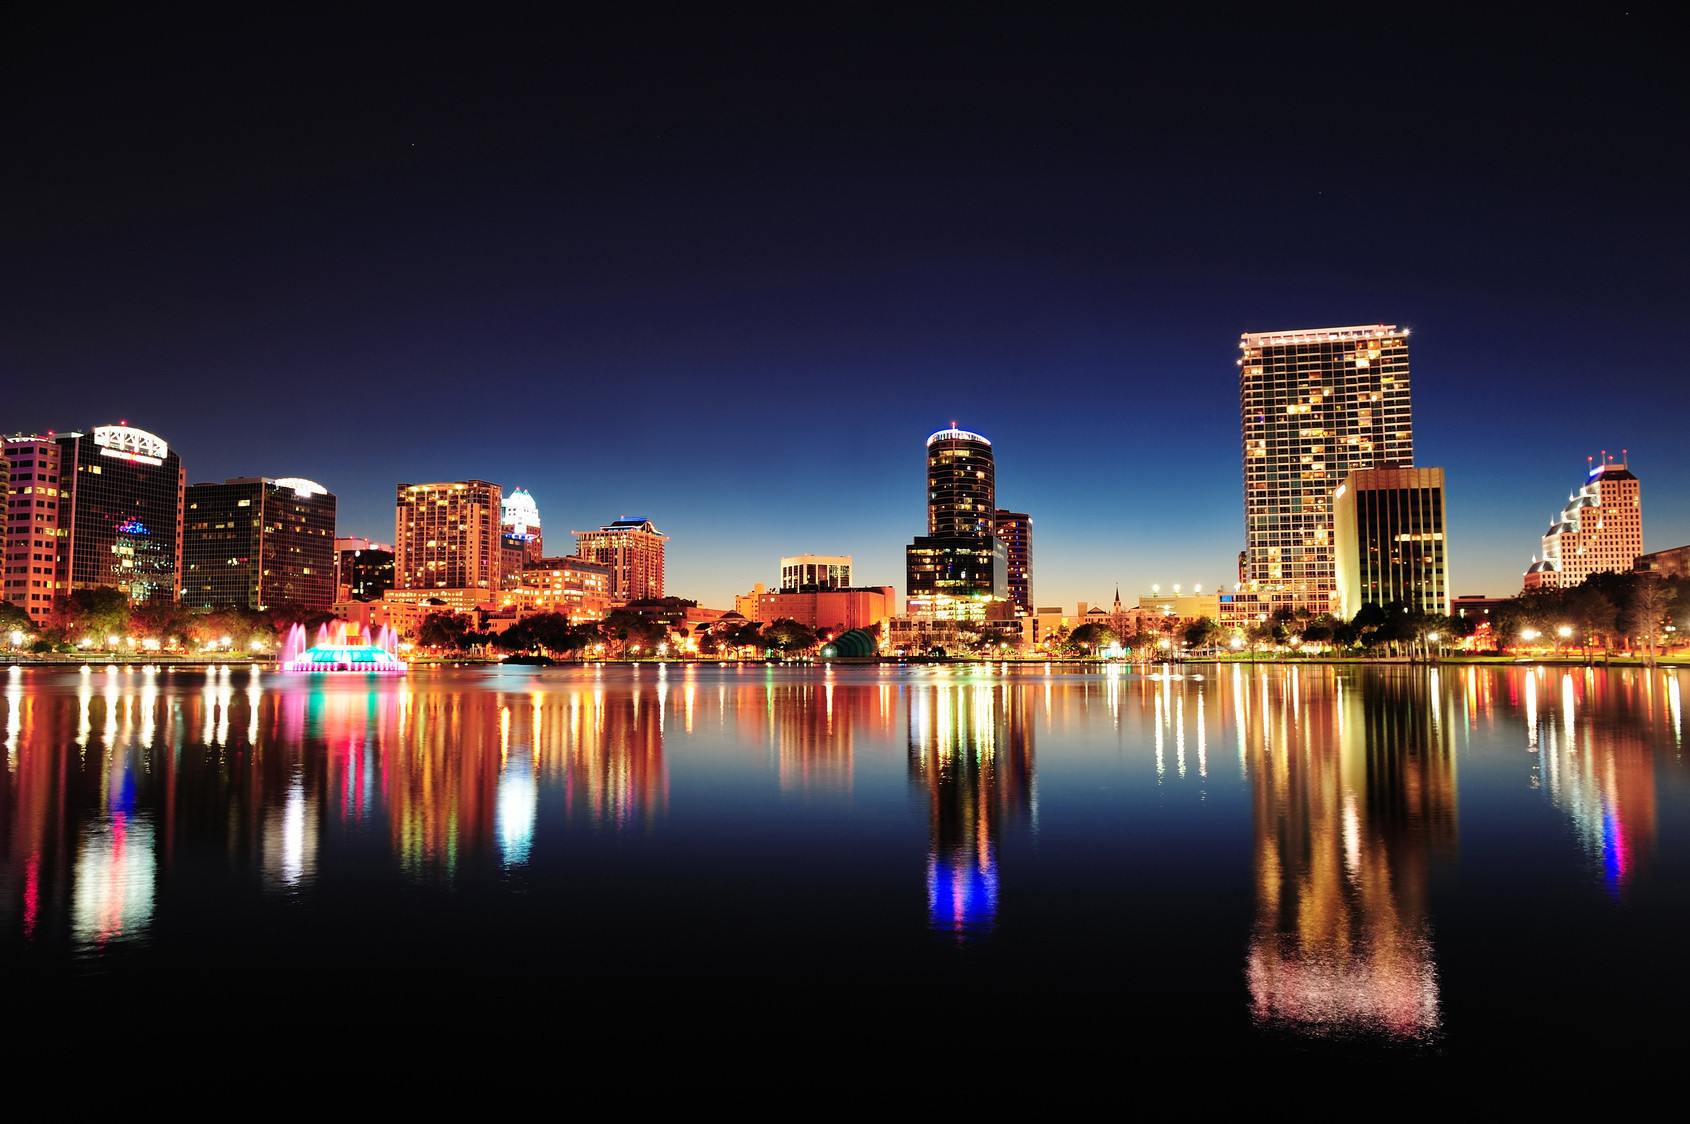 Solo Trip to Orlando   8 Of the Best Solo Trip Ideas for Women   Solo Trips For Women